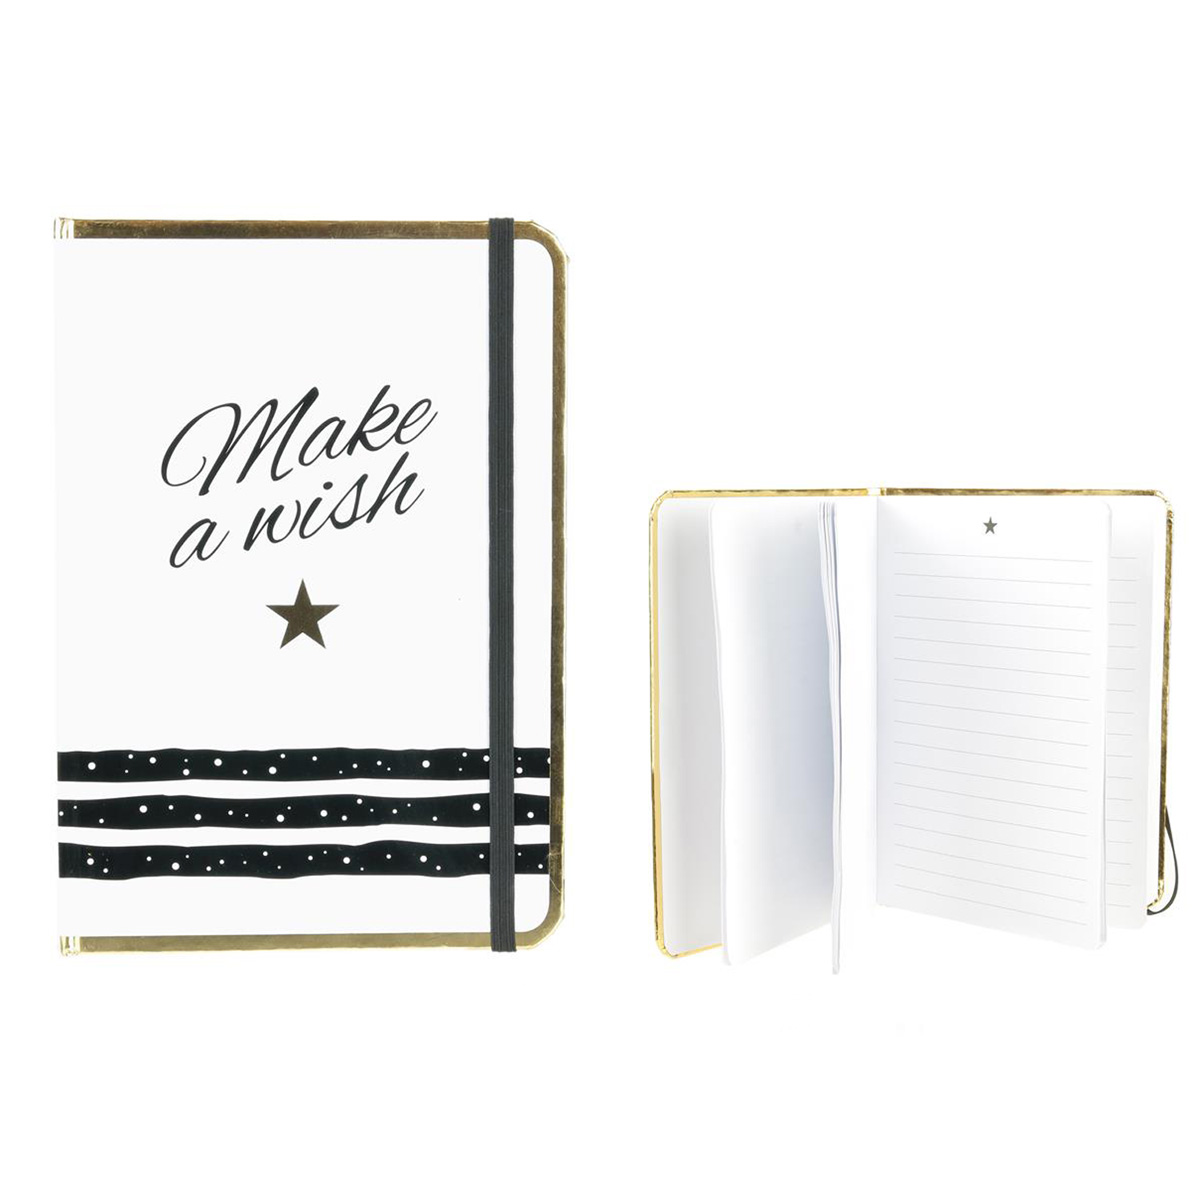 Carnet A5 \'Messages\' blanc doré (Make a wish) - 21x148 cm - [Q3849]